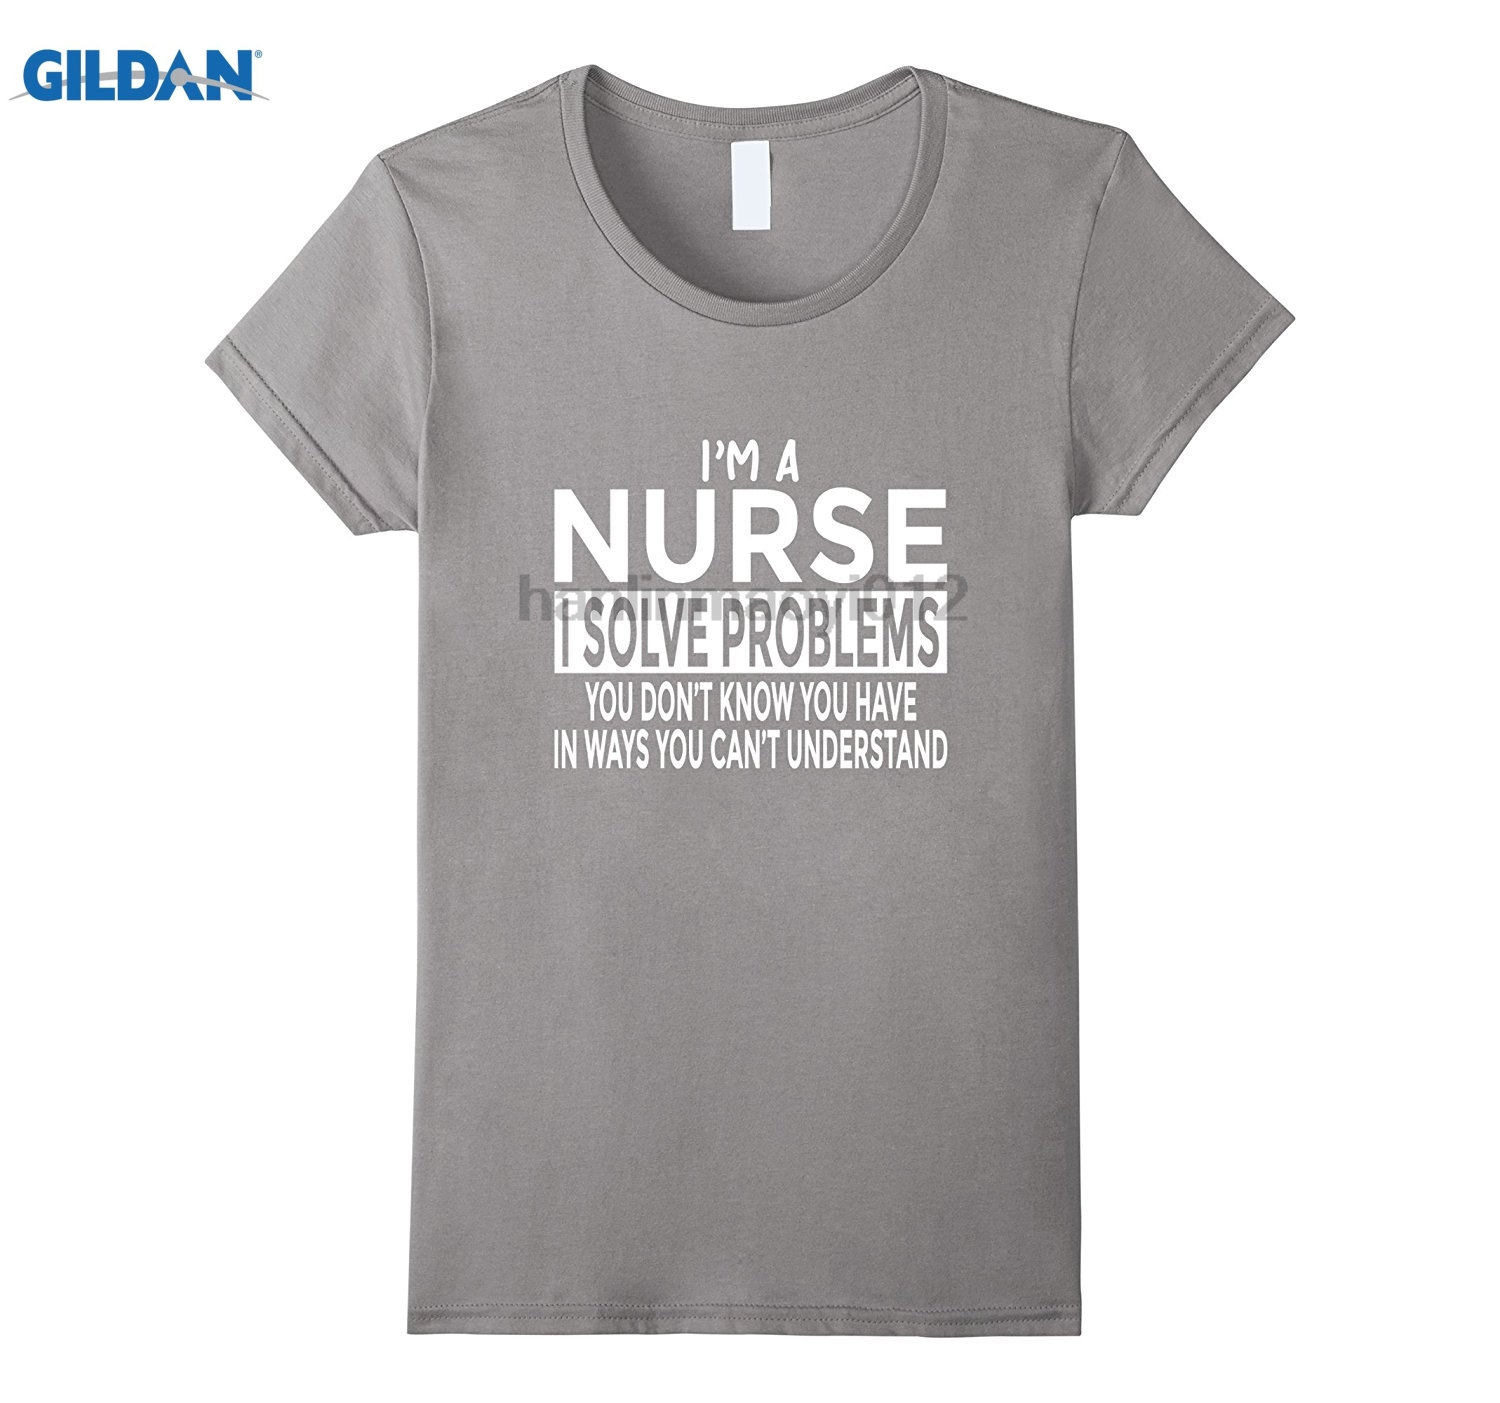 GILDAN Funny Nurse T-Shirt Solve Problems You Cant Understand The latest funny carnival music T-shirt dress T-shirt